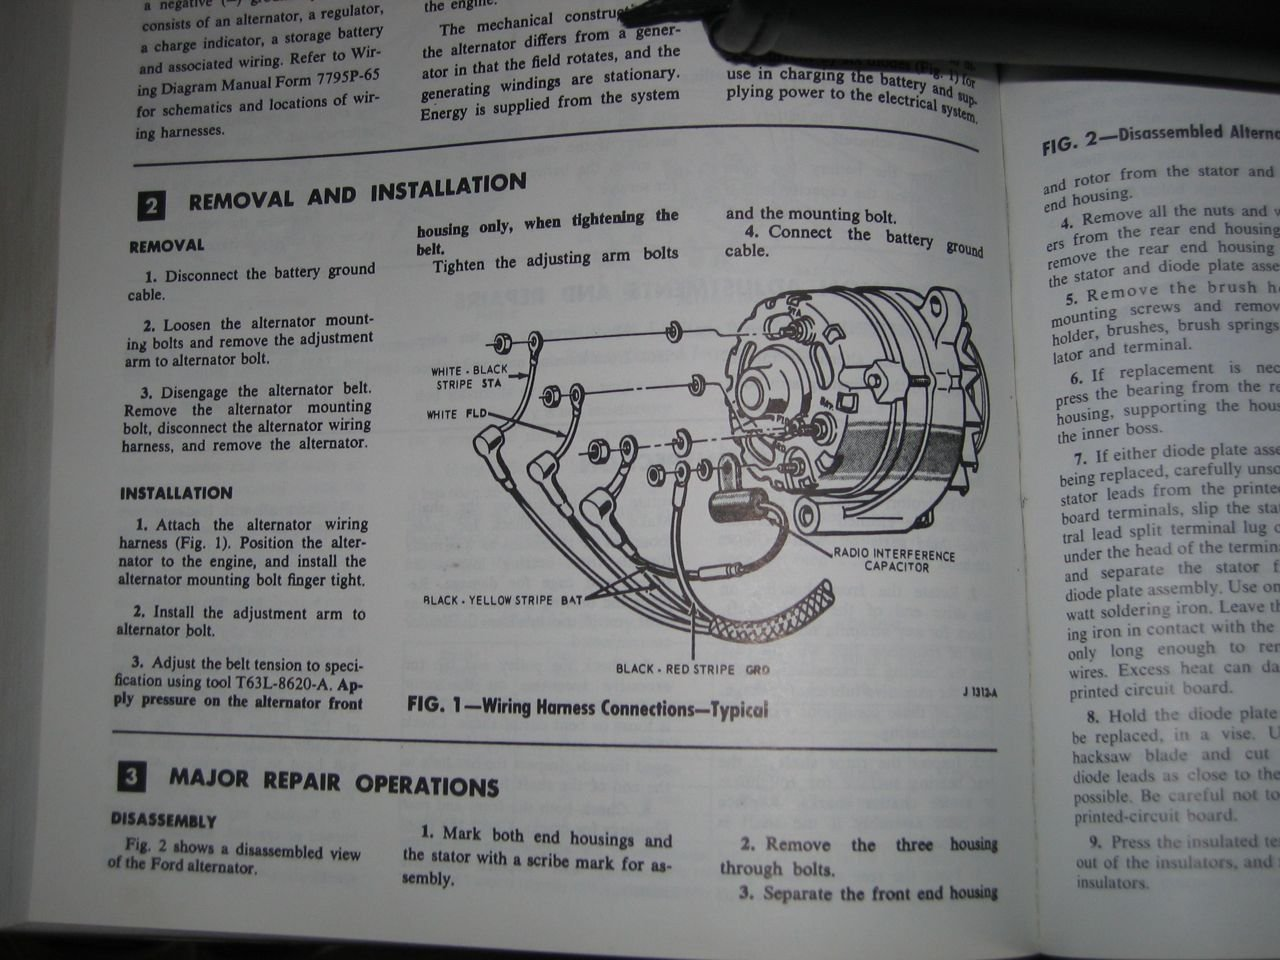 Mustang Wiring Diagram In Addition 1966 Ford Mustang Wiring Diagram